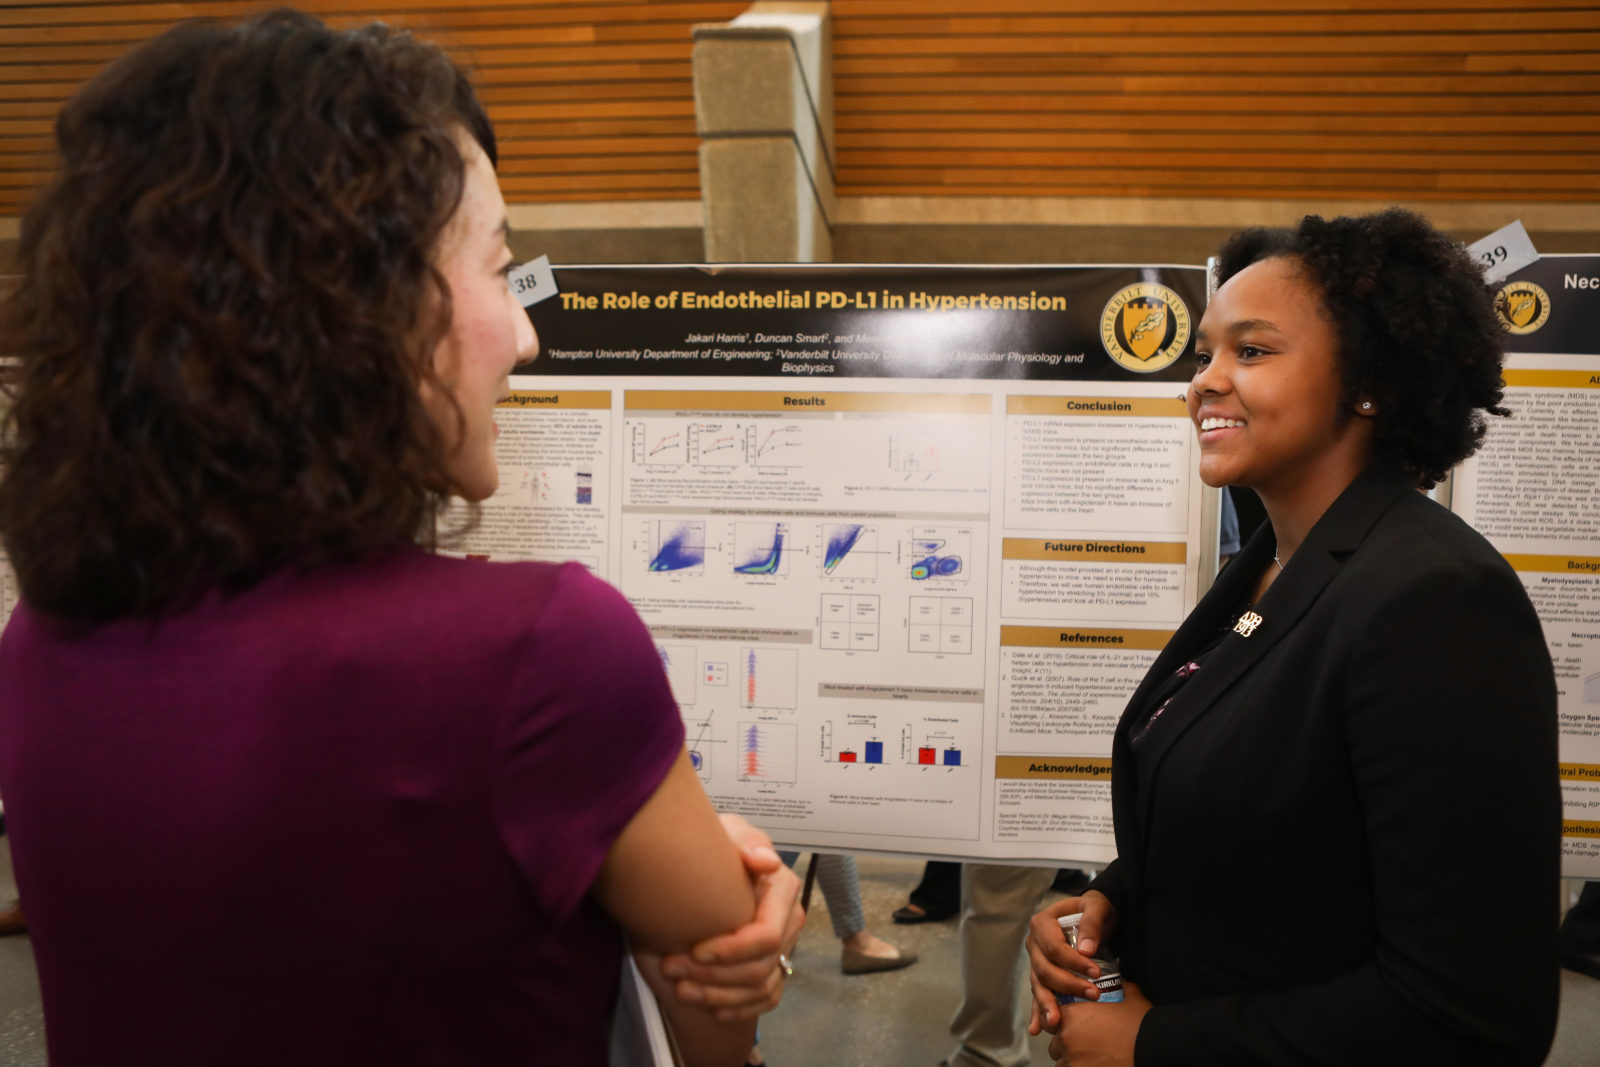 Student presenting at the 17th Annual student research symposium at the Engineering and Science Building (Susan Urmy/Vanderbilt)